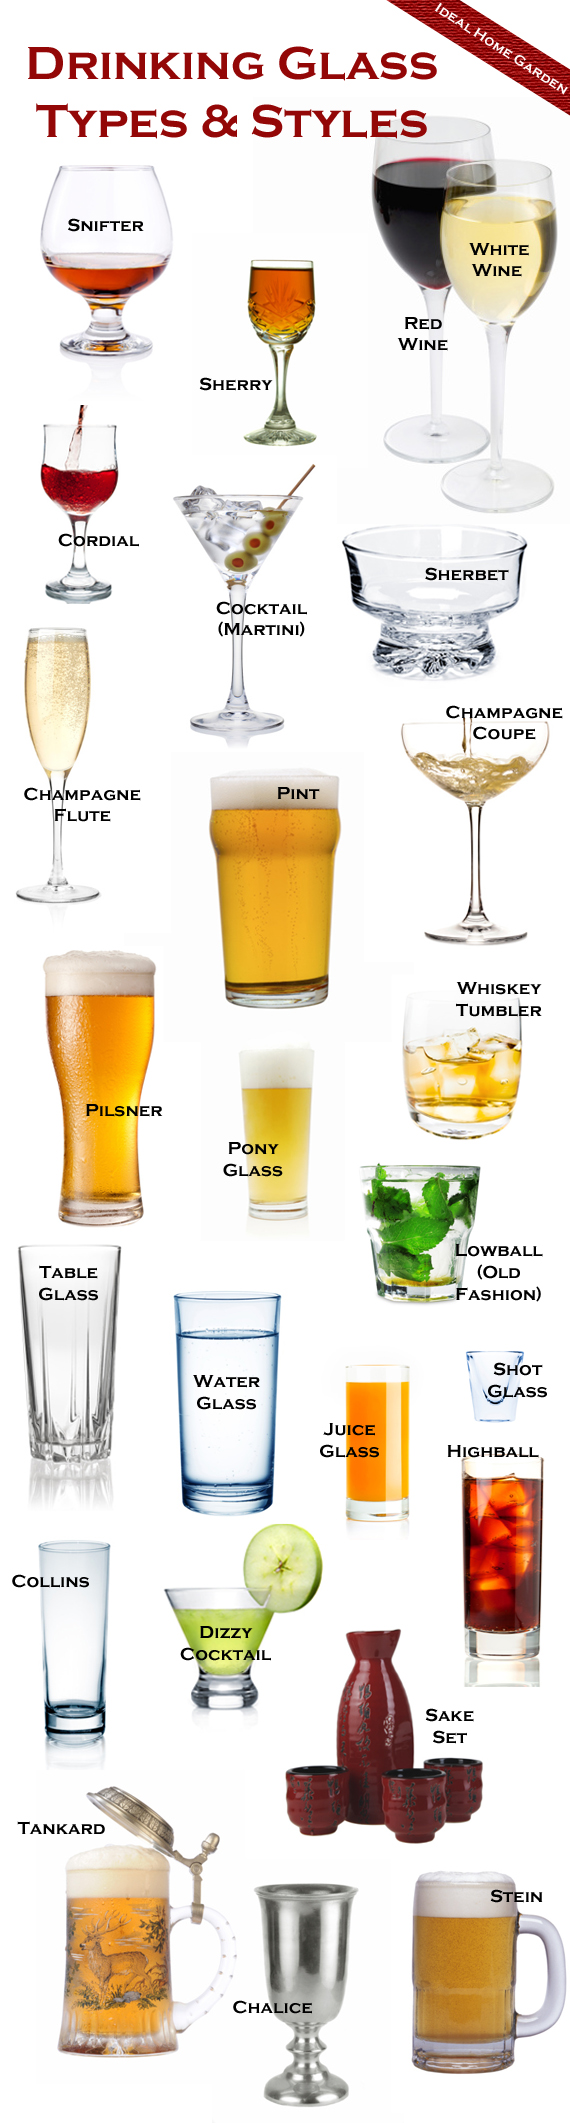 drinking_glasses_stein_chalice_sake_tankard_collins_dizzy_cocktail_martini_highball_juice_old_fashioned_lowball_shot_glass_table_water_whiskey_tumbler_pilsner_pint_pony_champagne_cordial_sherry_1363731968